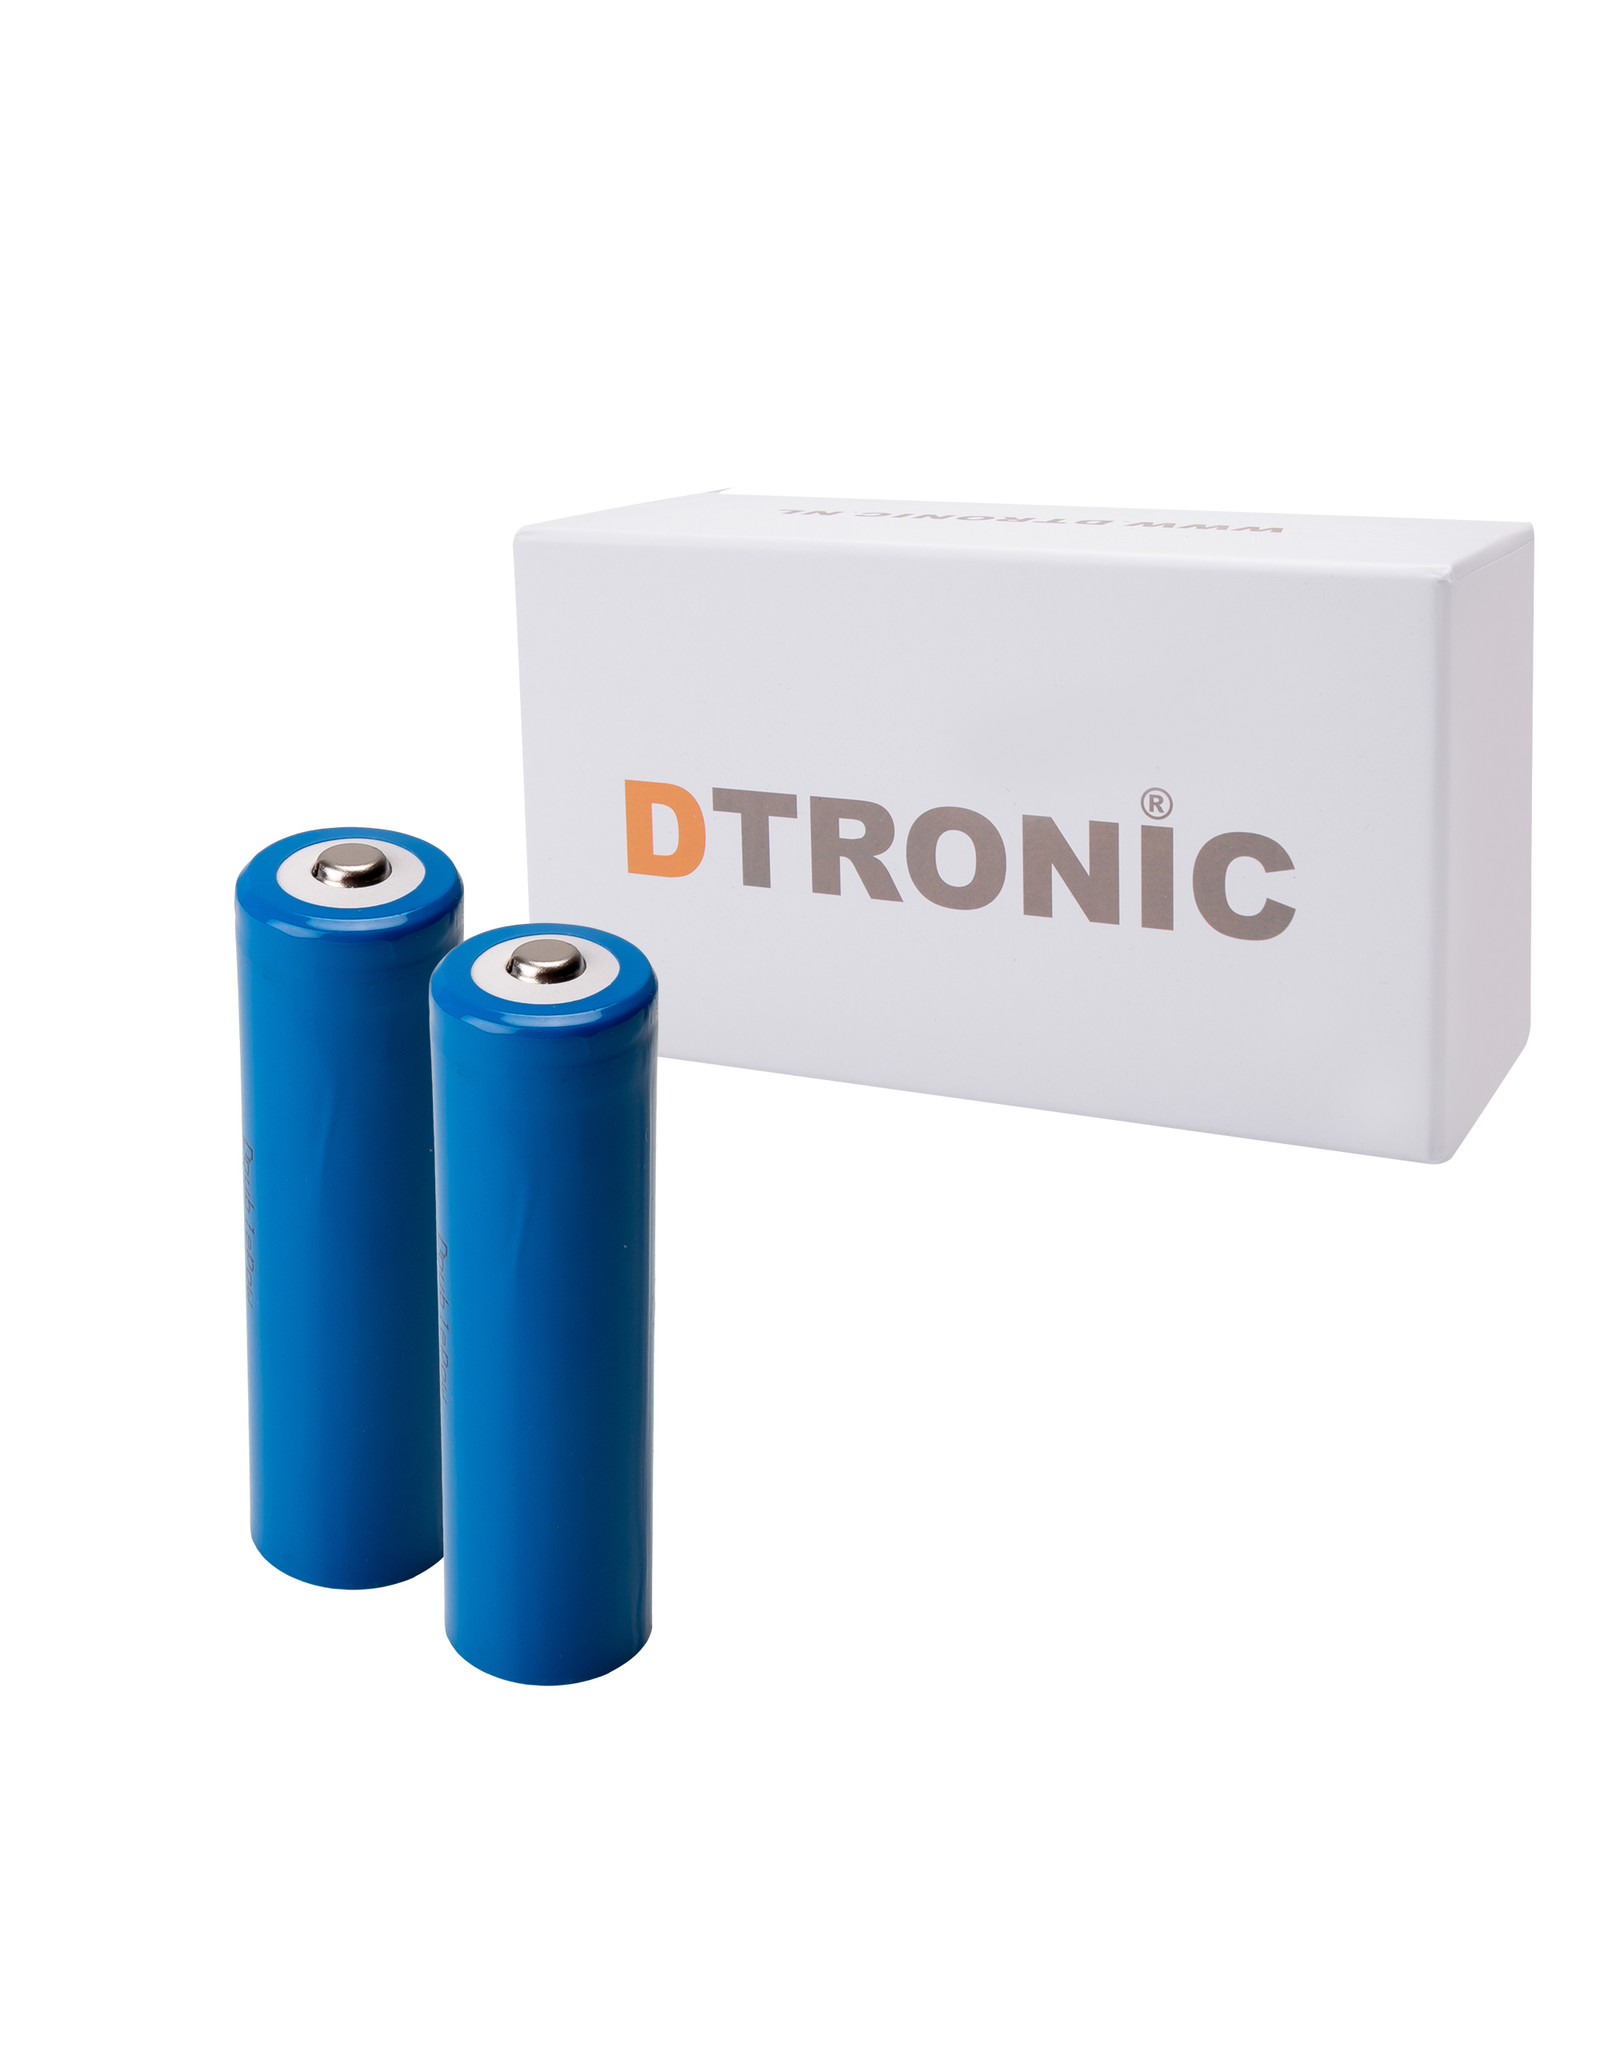 DTRONIC DTRONIC - A32